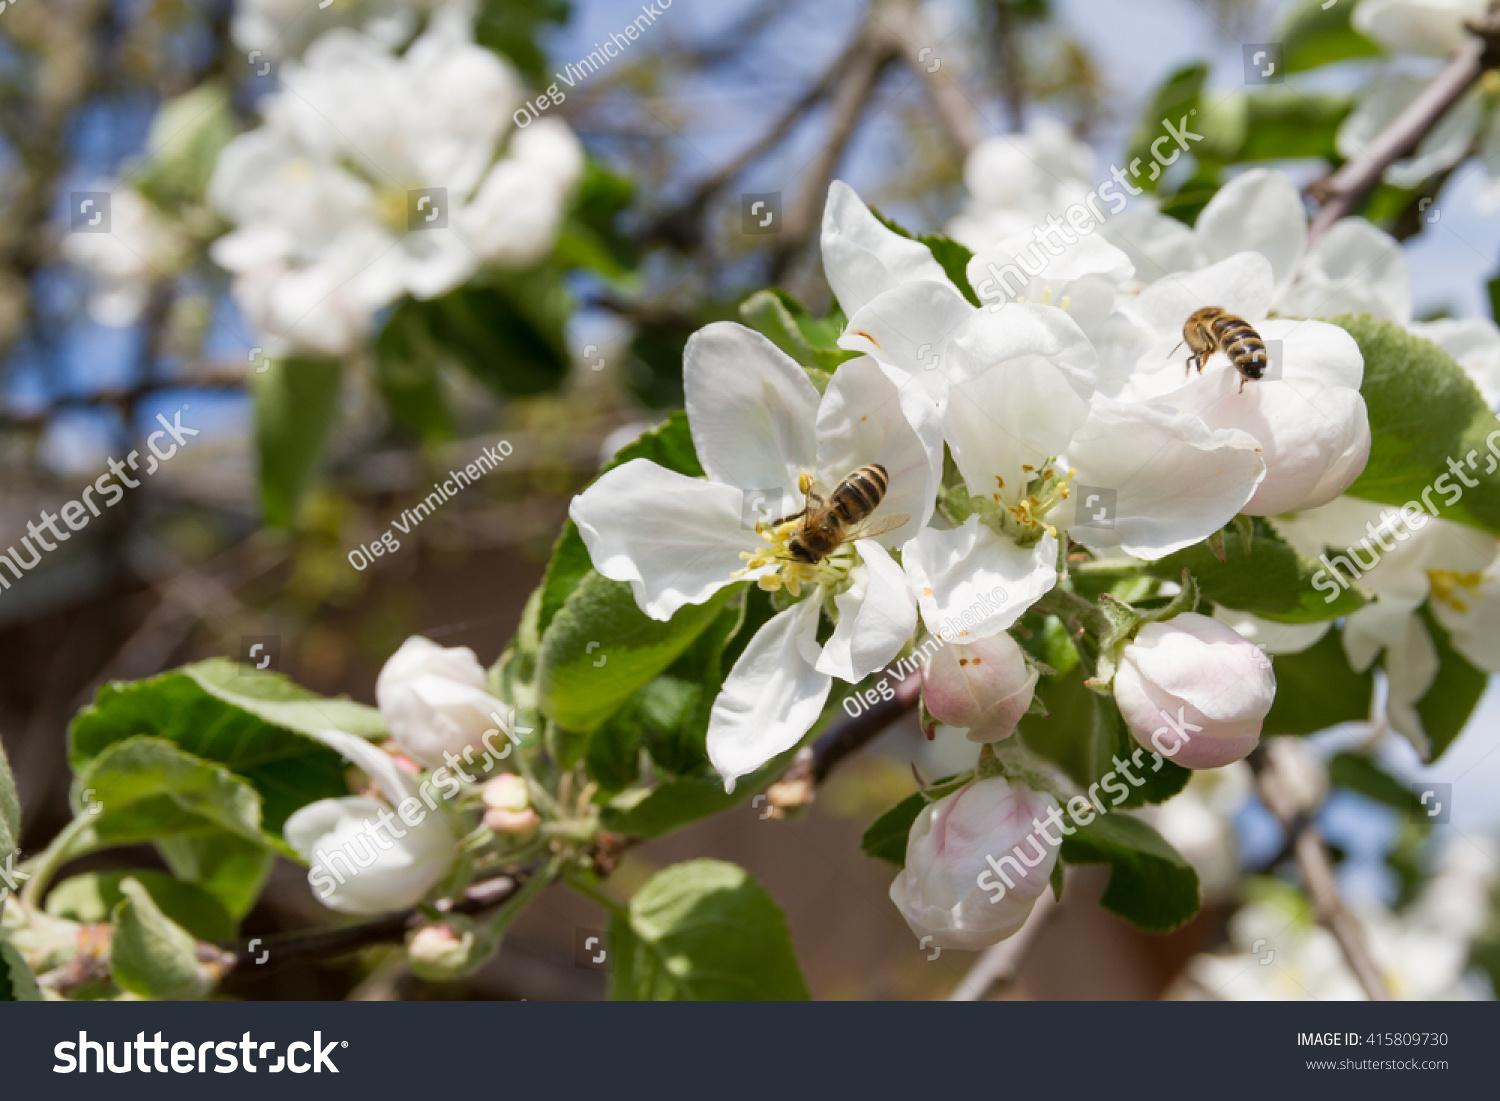 Beautiful Lush White Flowers Of Apple Trees On A Sunny Day In May